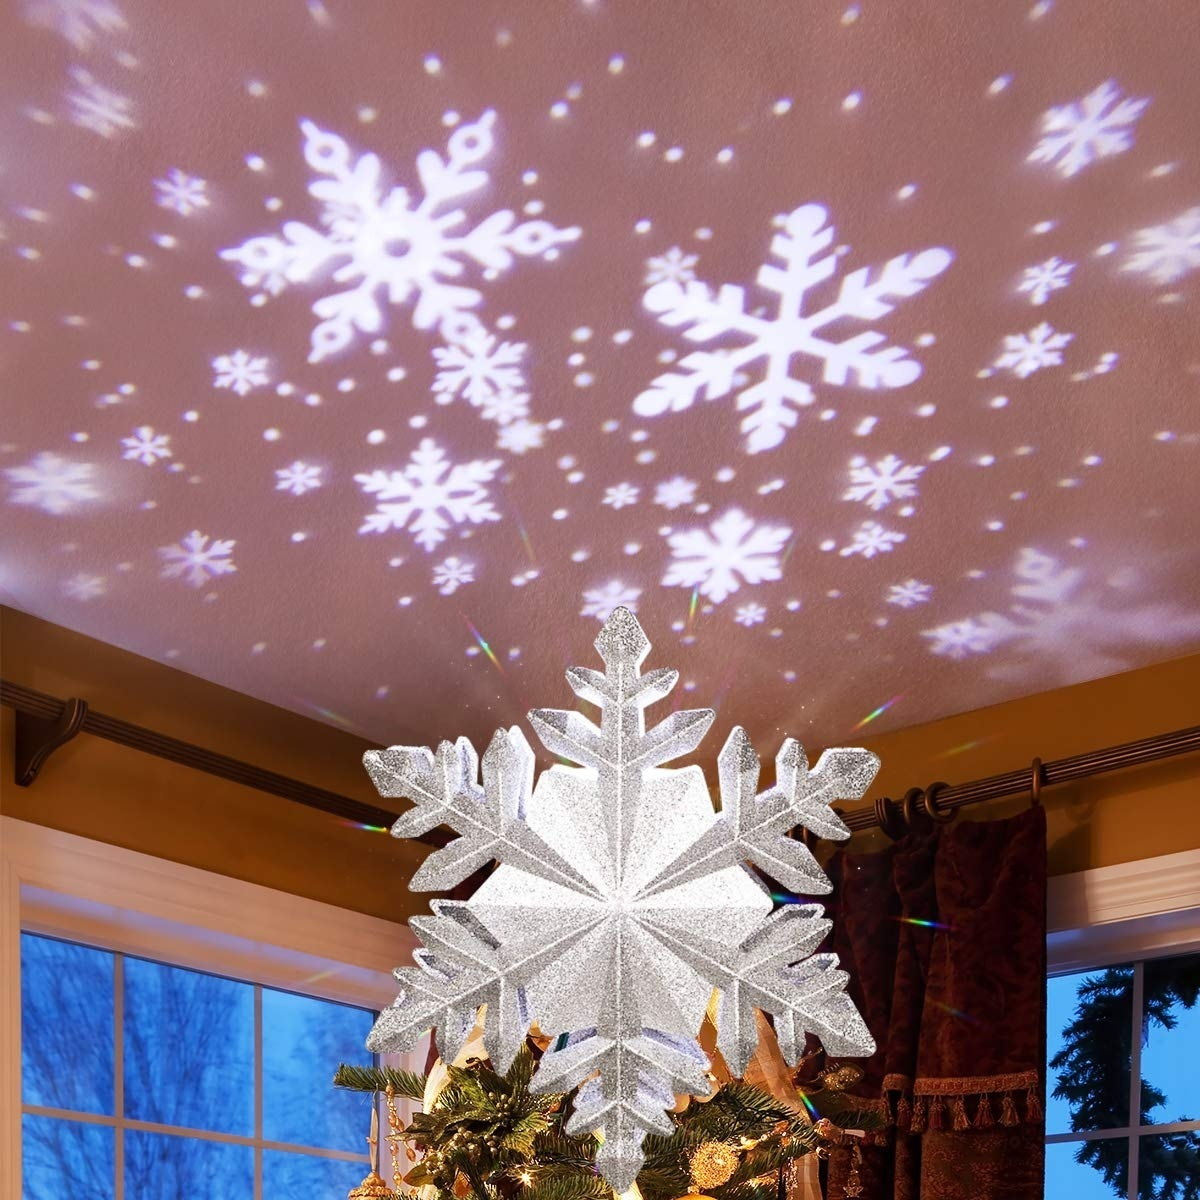 LED 3D Snow Flower Projector Light for Christmas Tree Topper Lighted Rotating Xmas ecoration British plug